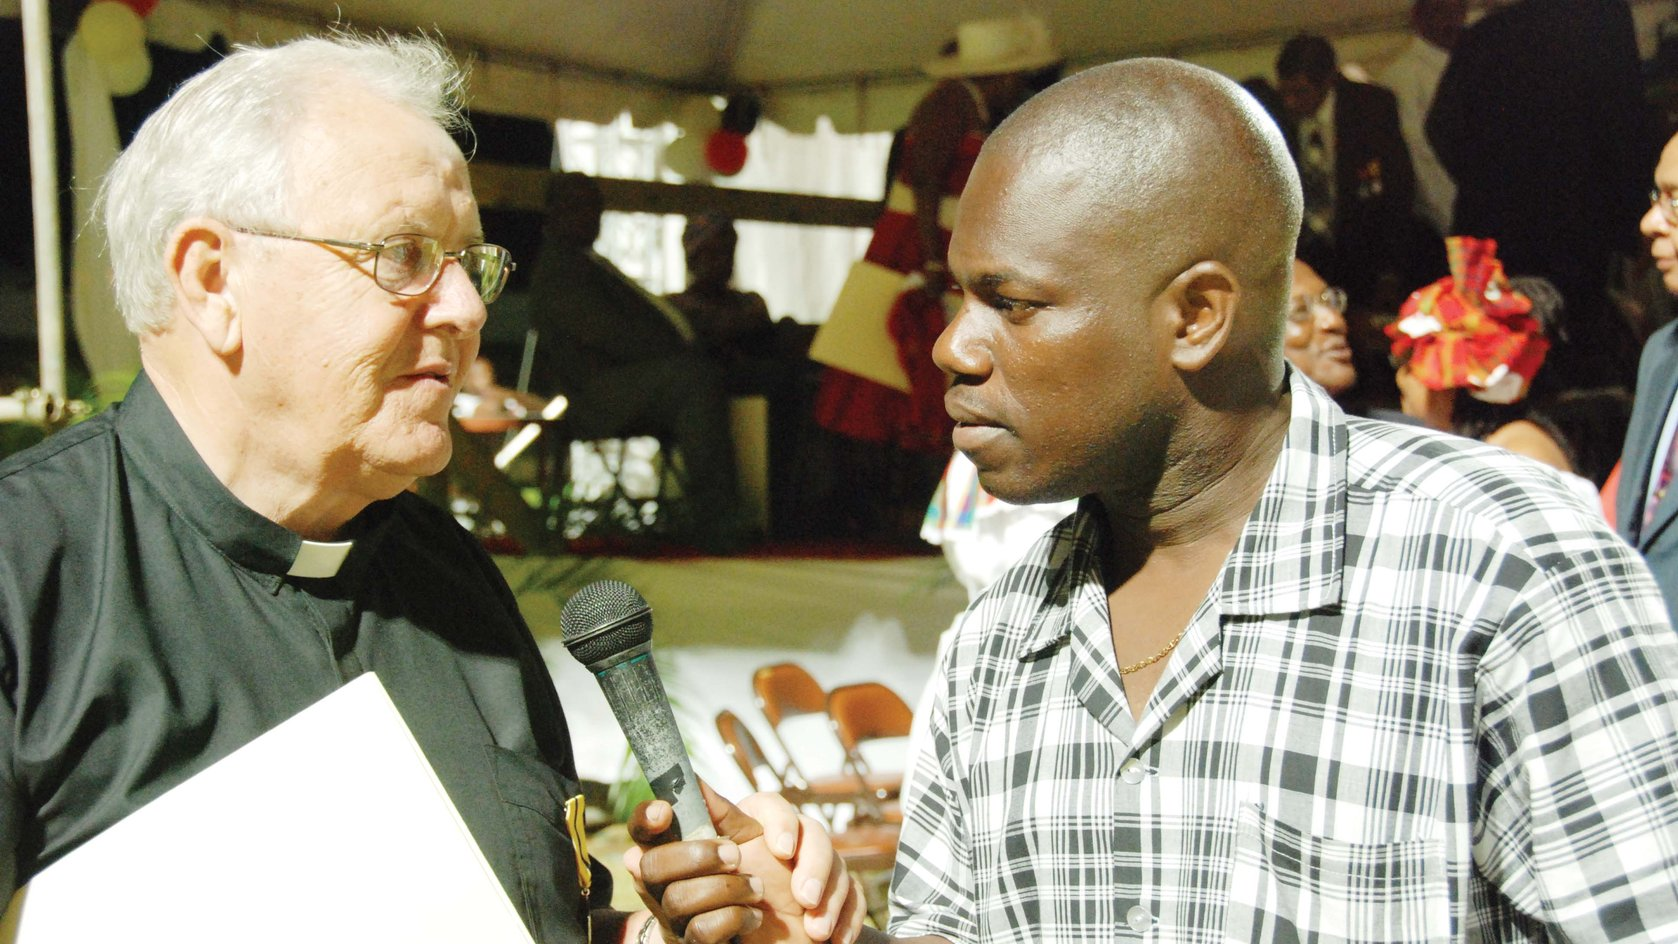 Sun's Person of the Year 2108 here interviews the late Catholic Priest Father Charles in 2006